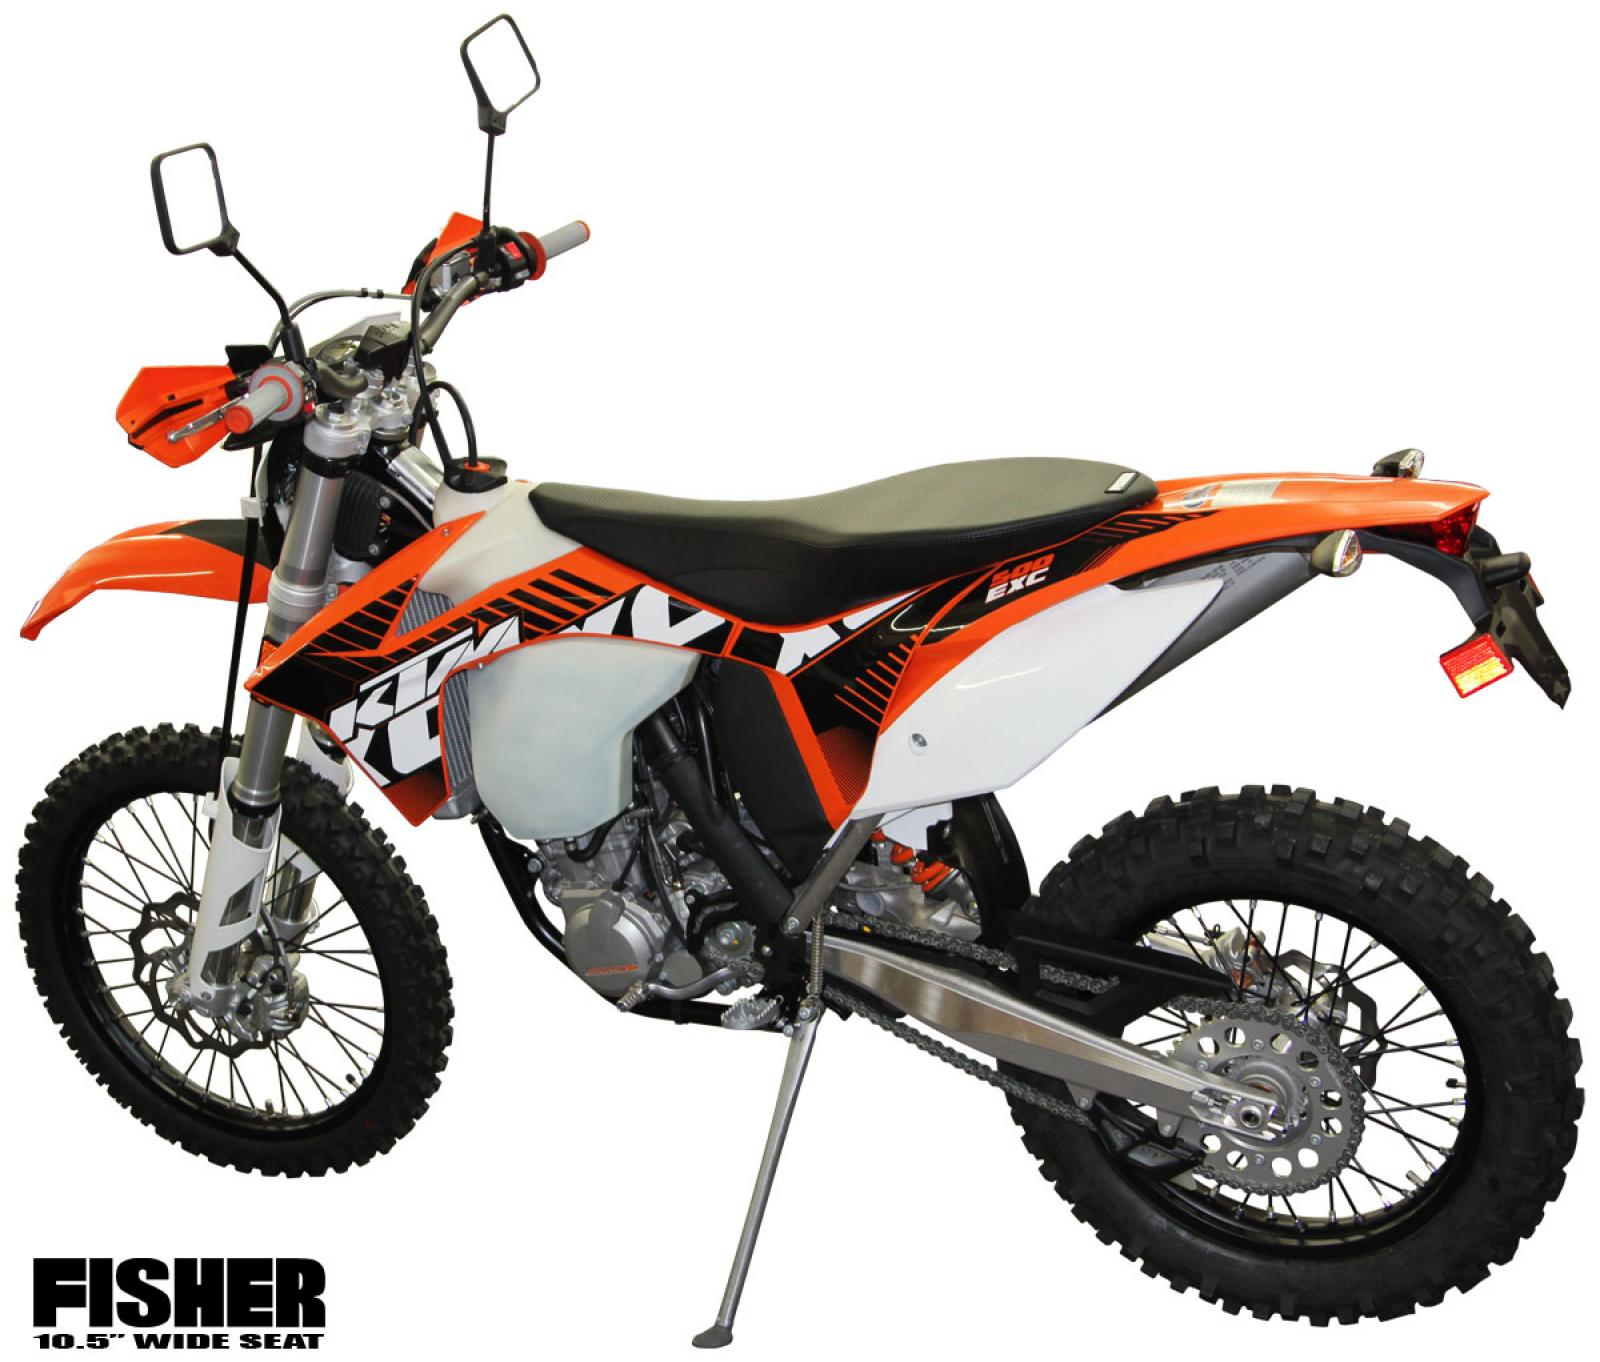 ktm ktm 500 exc moto zombdrive com. Black Bedroom Furniture Sets. Home Design Ideas